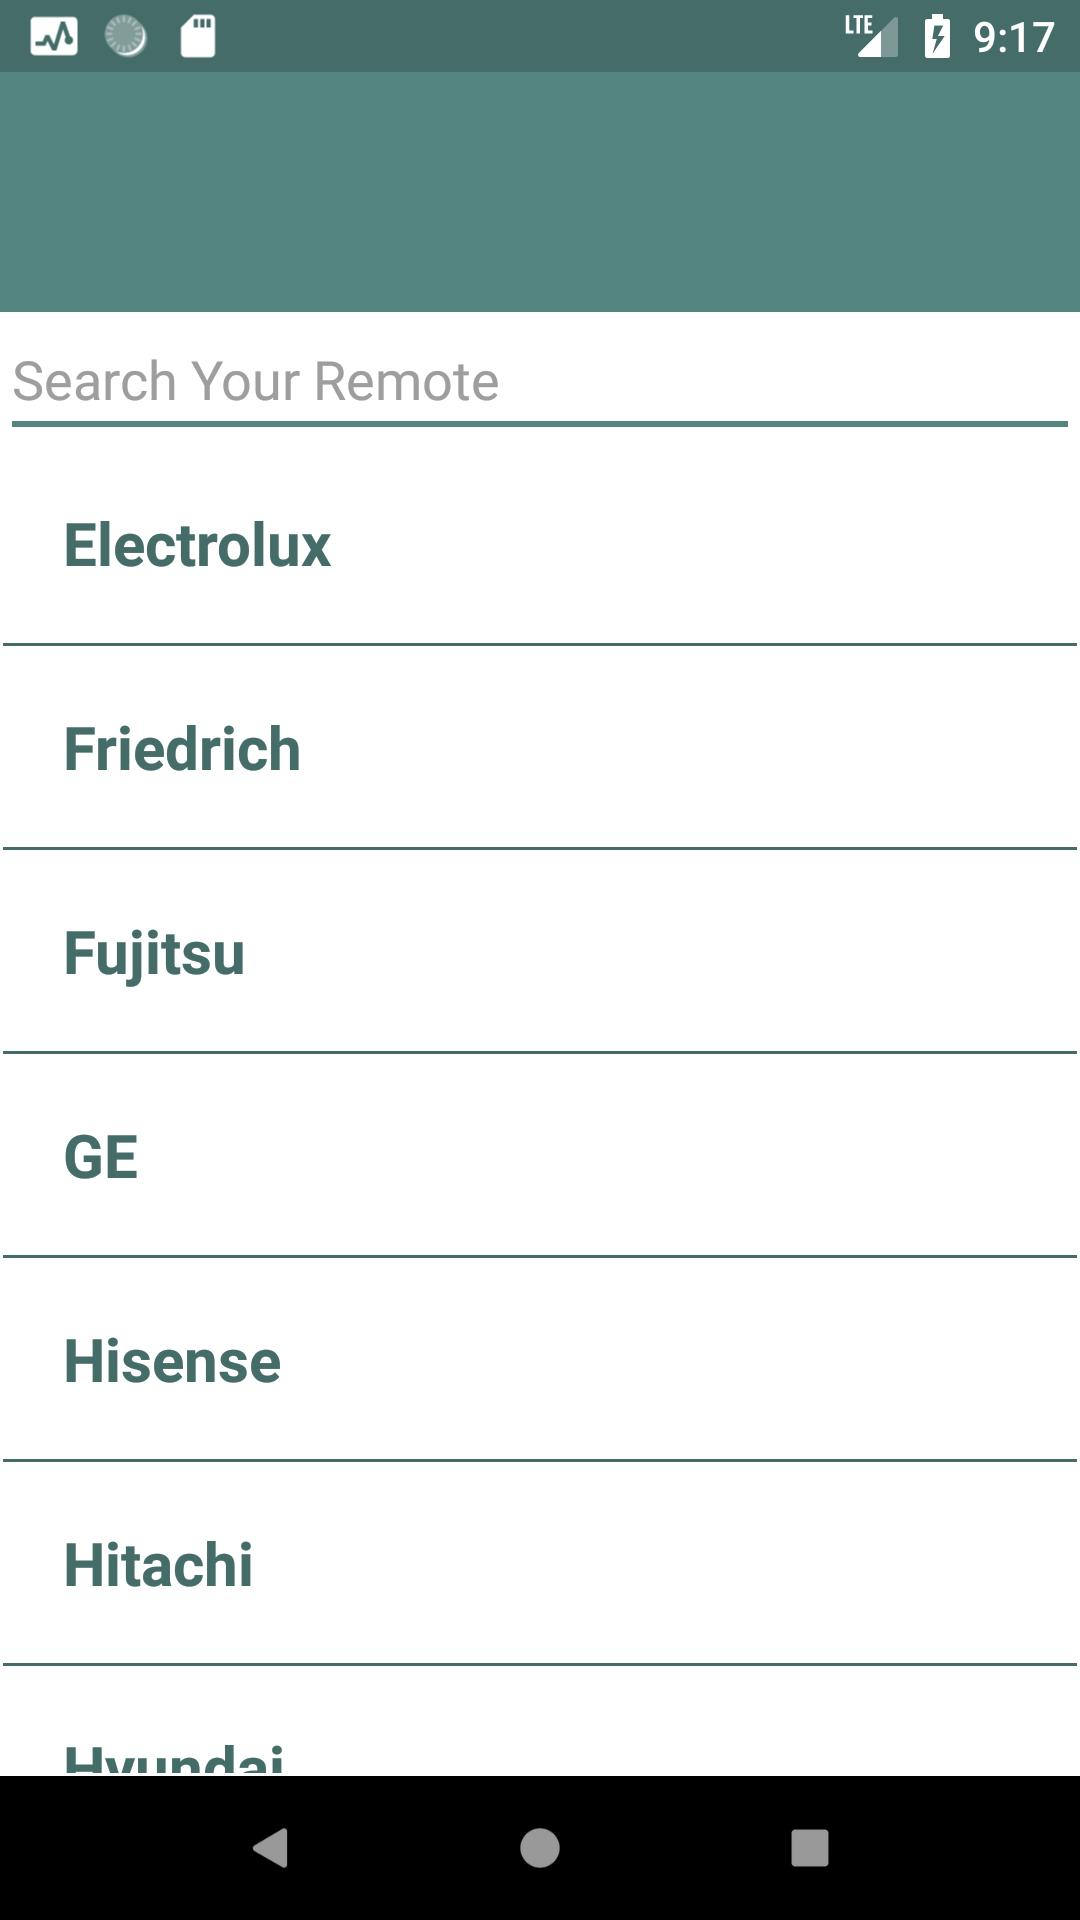 Electrolux AC Remote Control for Android - APK Download